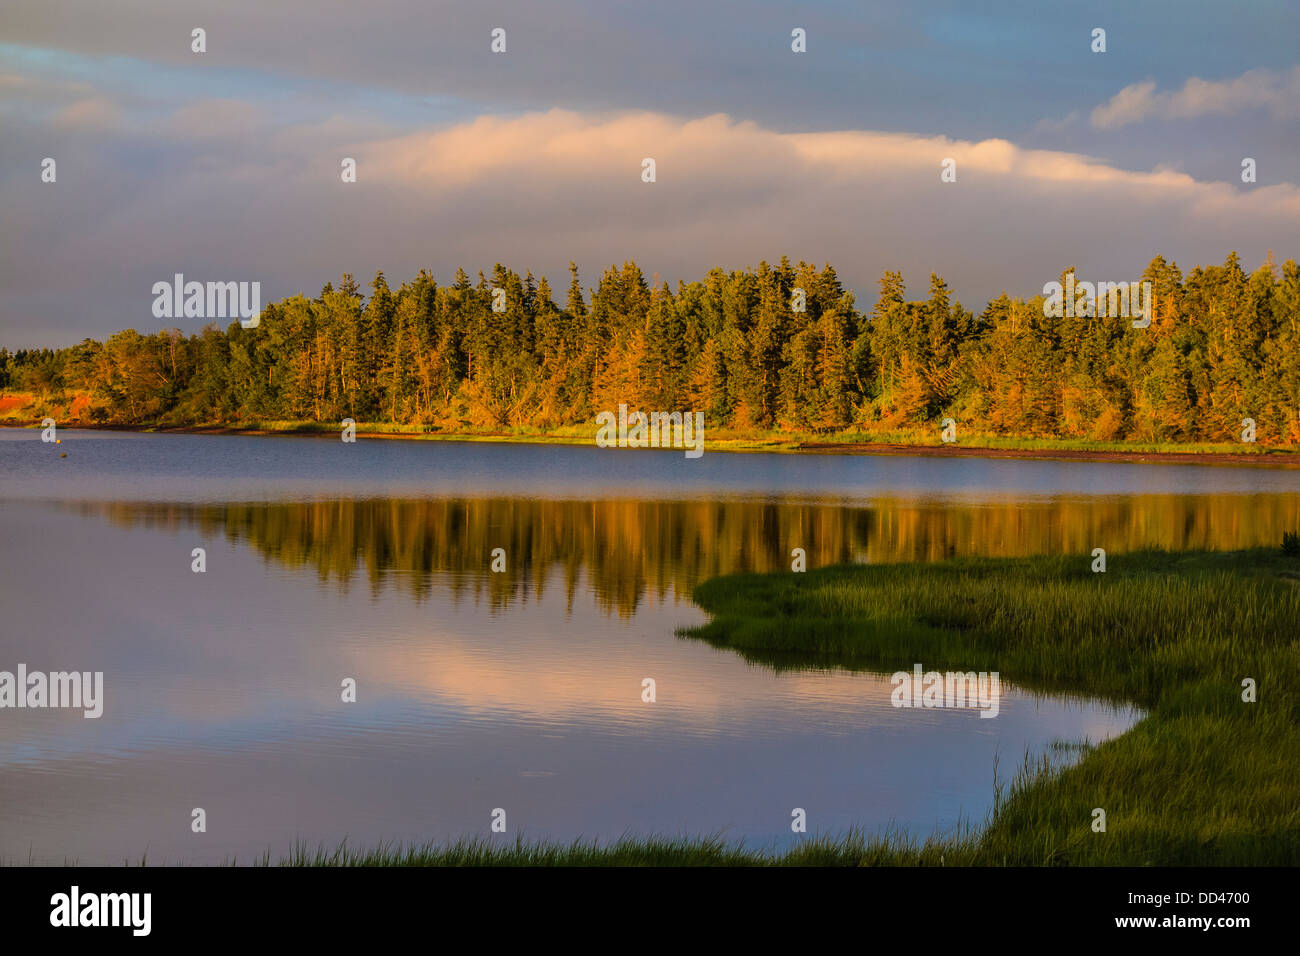 Colorful sunset with reflection of evergreen trees in the Southwest River on Prince Edward Island, Canada. - Stock Image